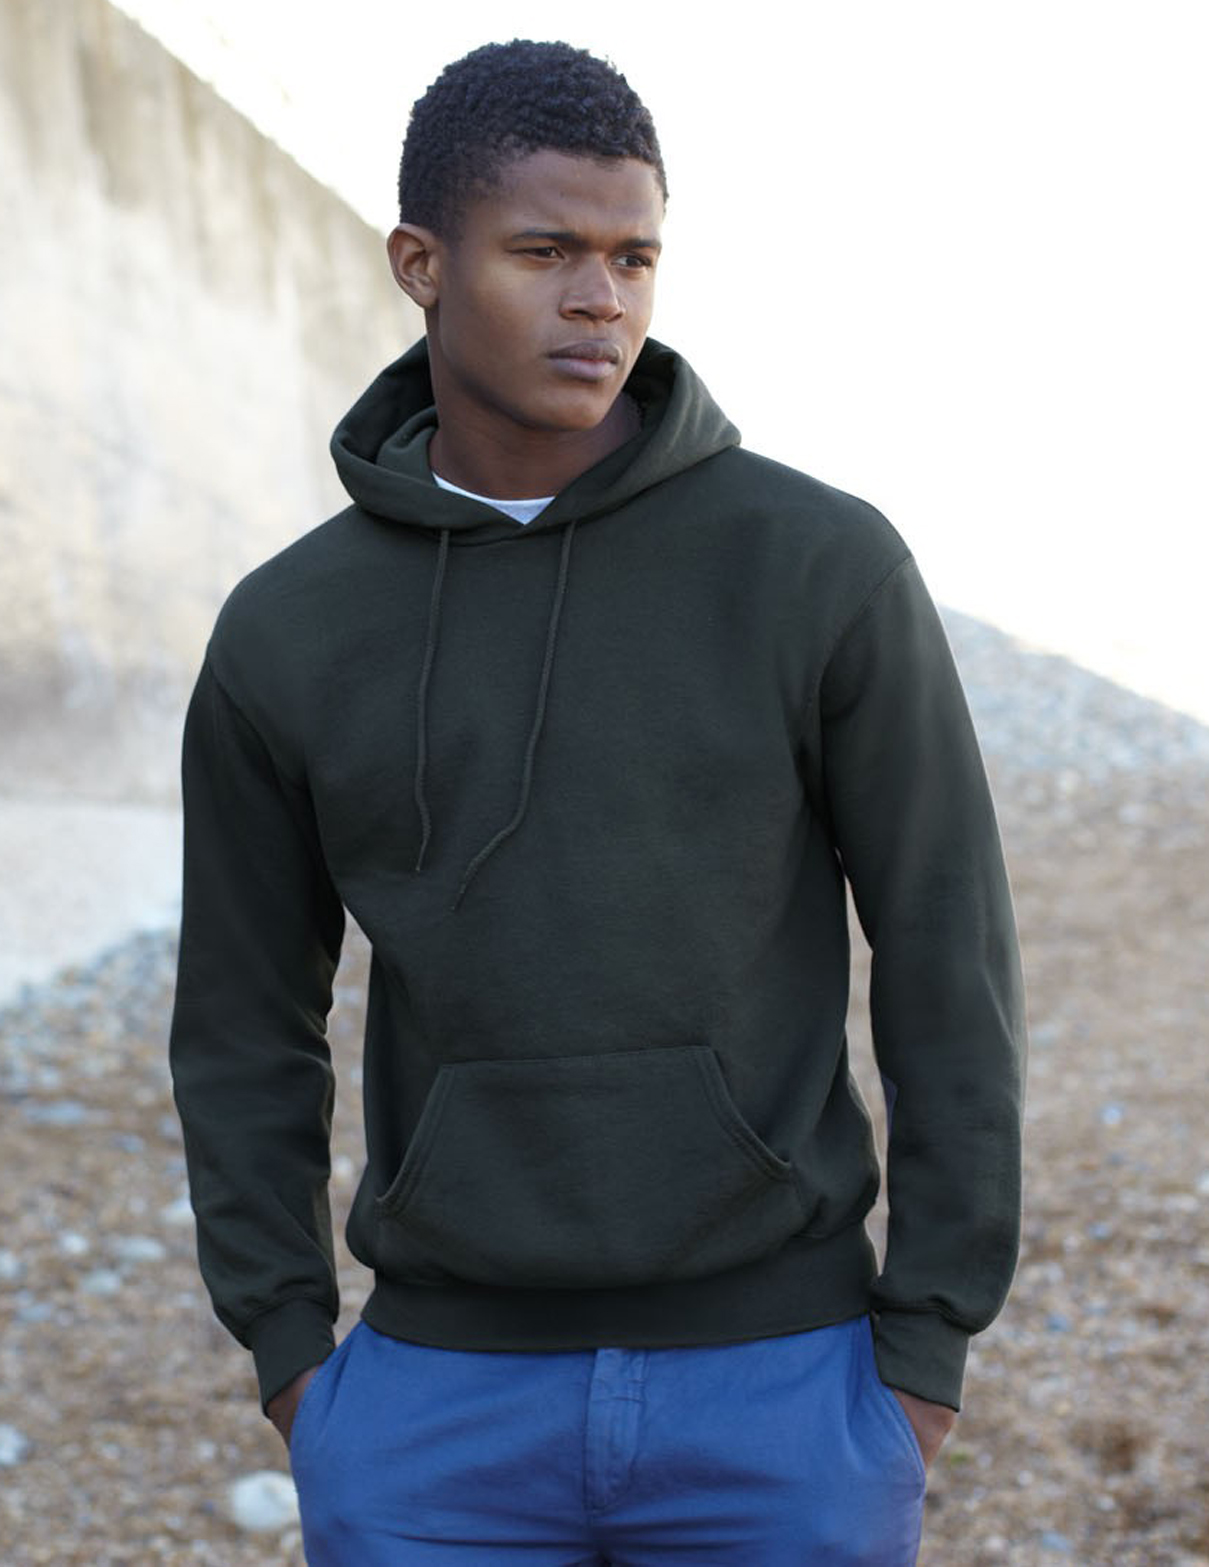 Fruit of the Loom Hooded Sweater SC244C Foto nieuw